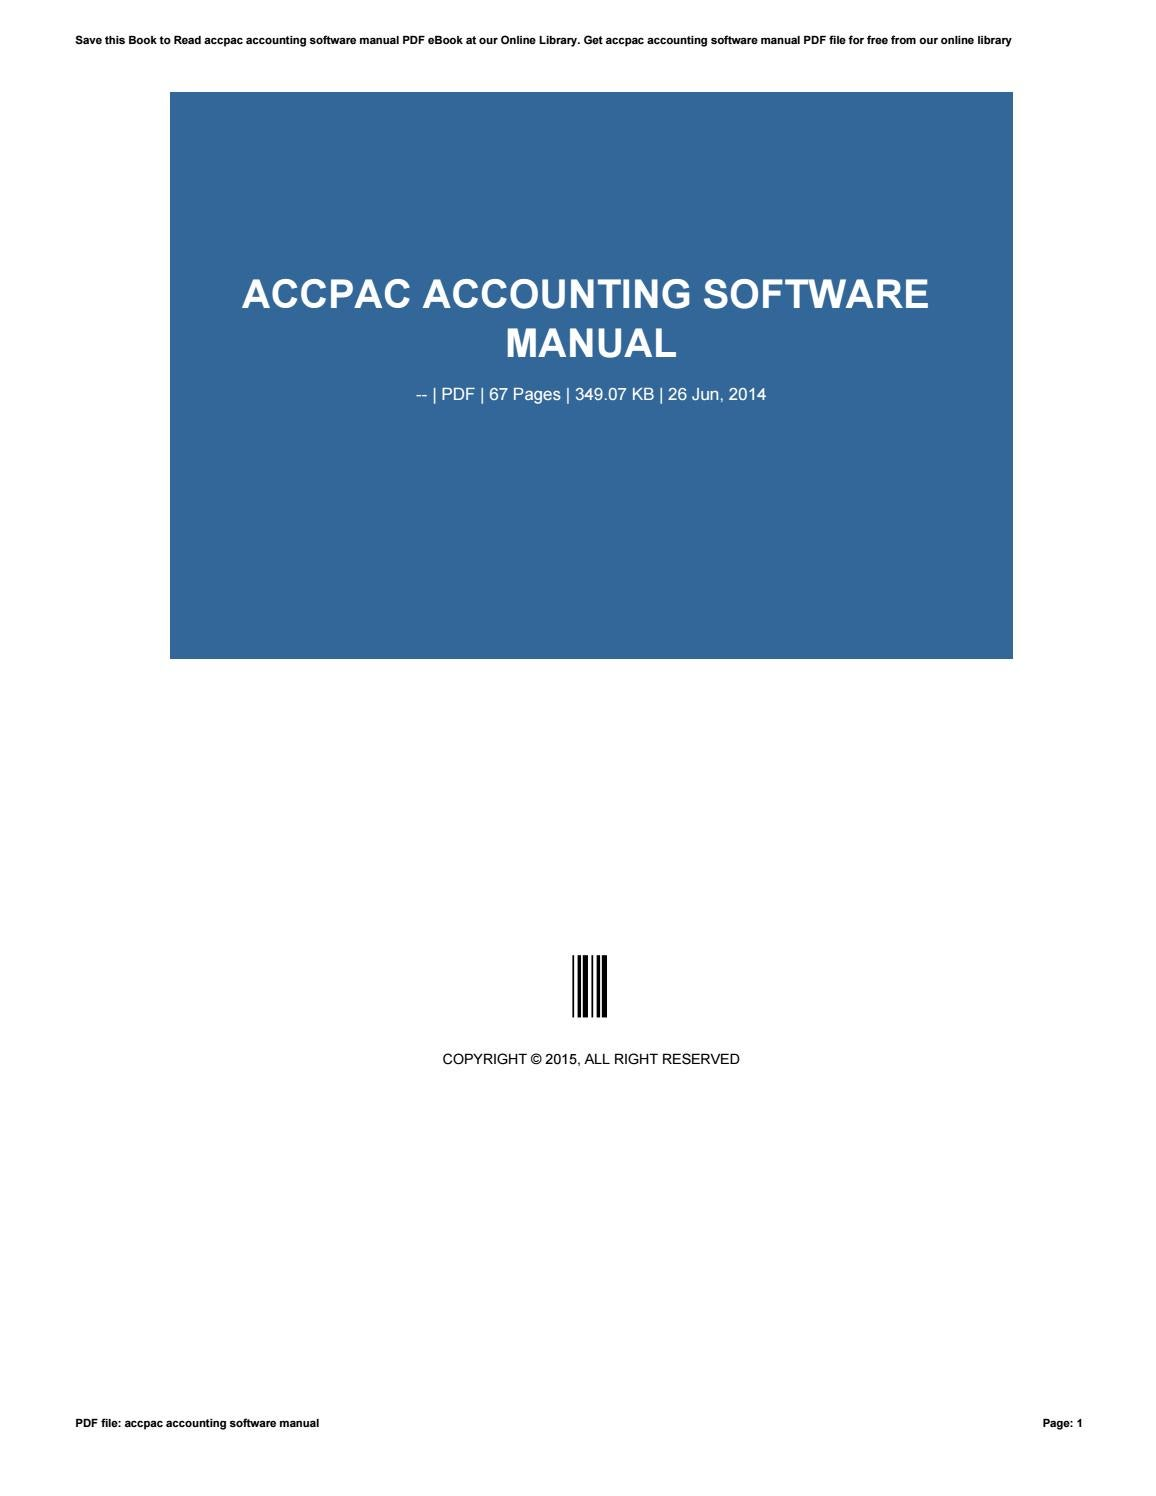 Accpac accounting software manual by zhcne5 issuu